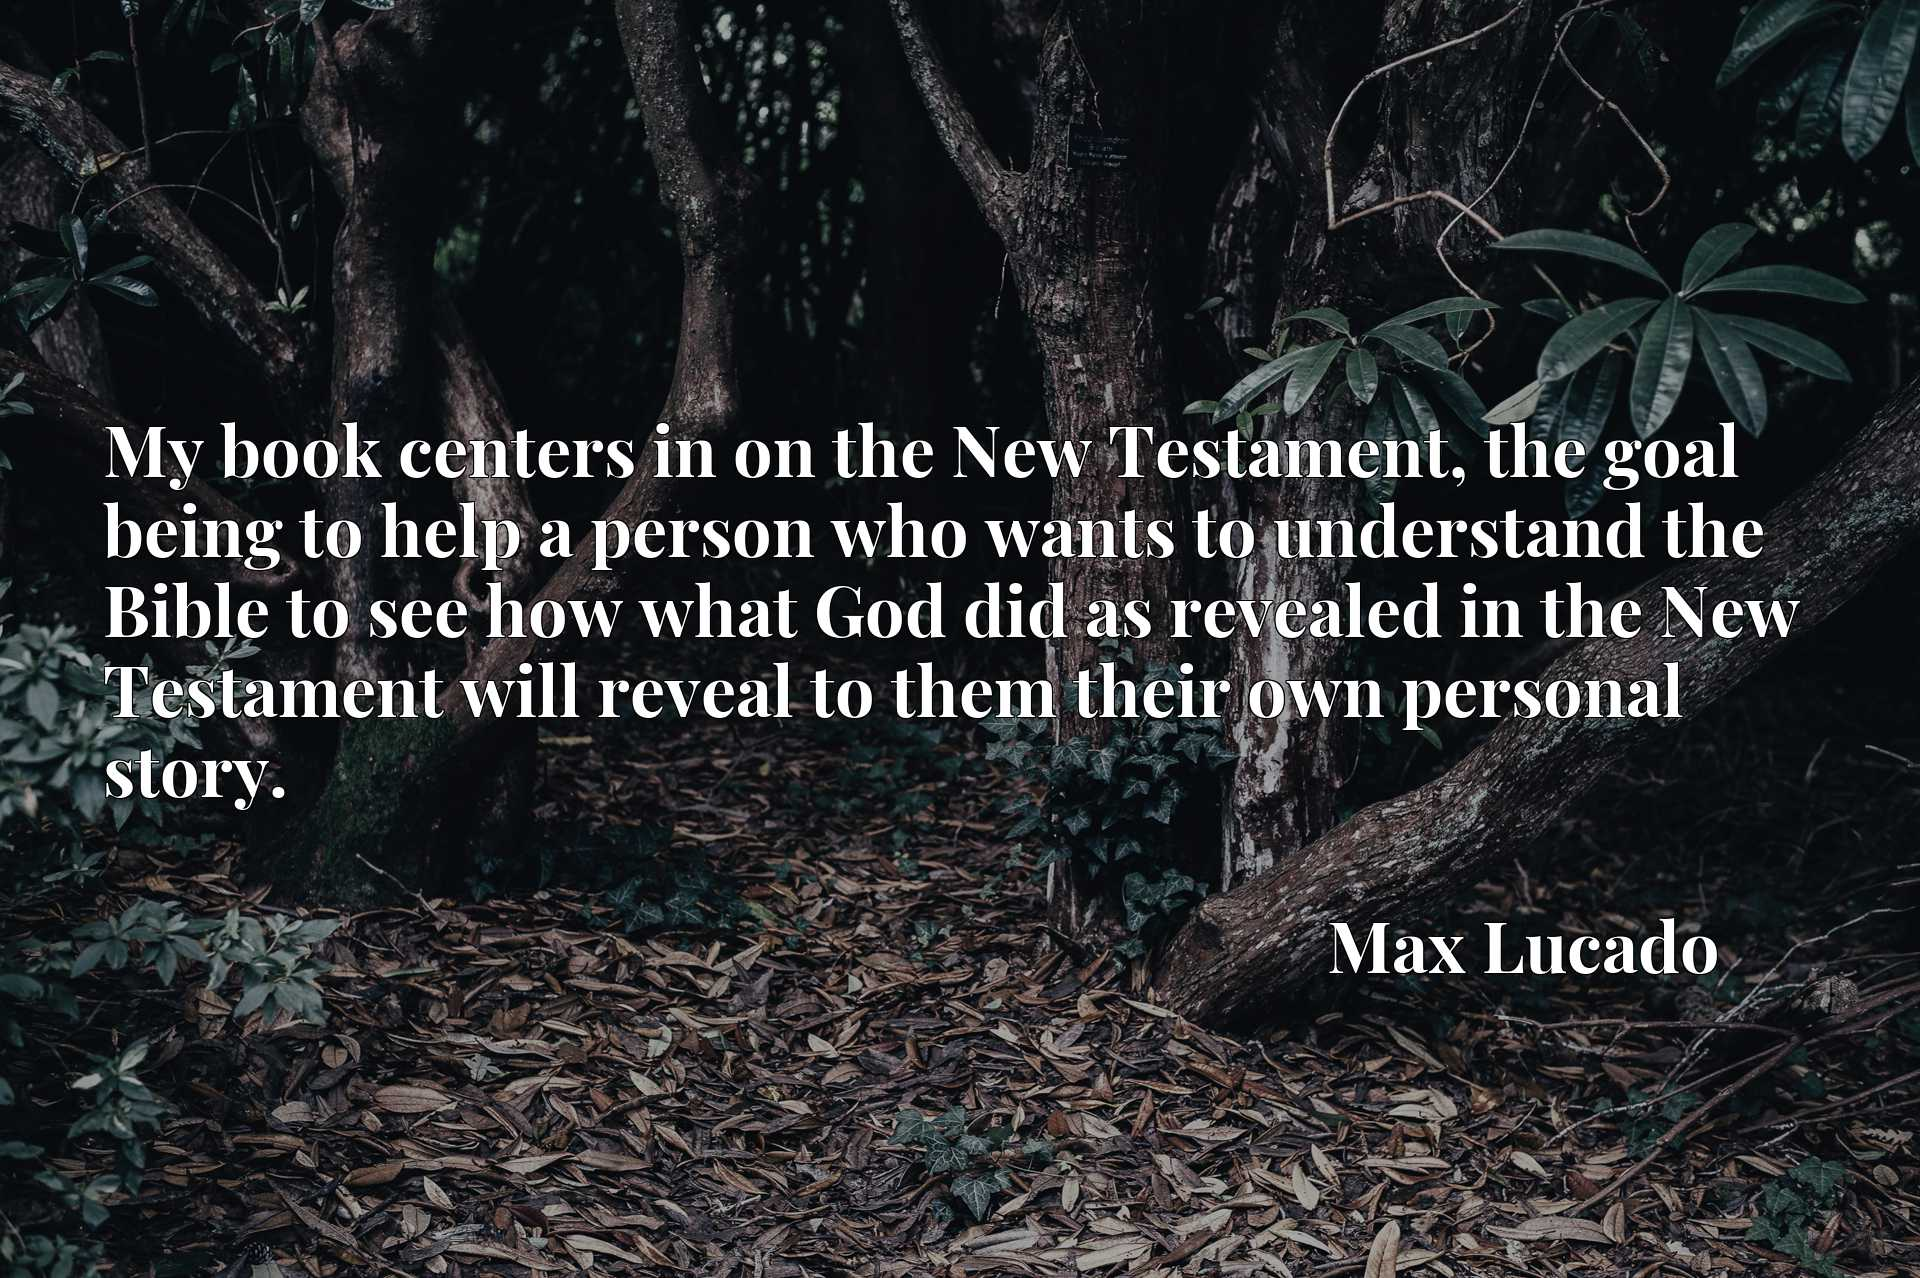 My book centers in on the New Testament, the goal being to help a person who wants to understand the Bible to see how what God did as revealed in the New Testament will reveal to them their own personal story.